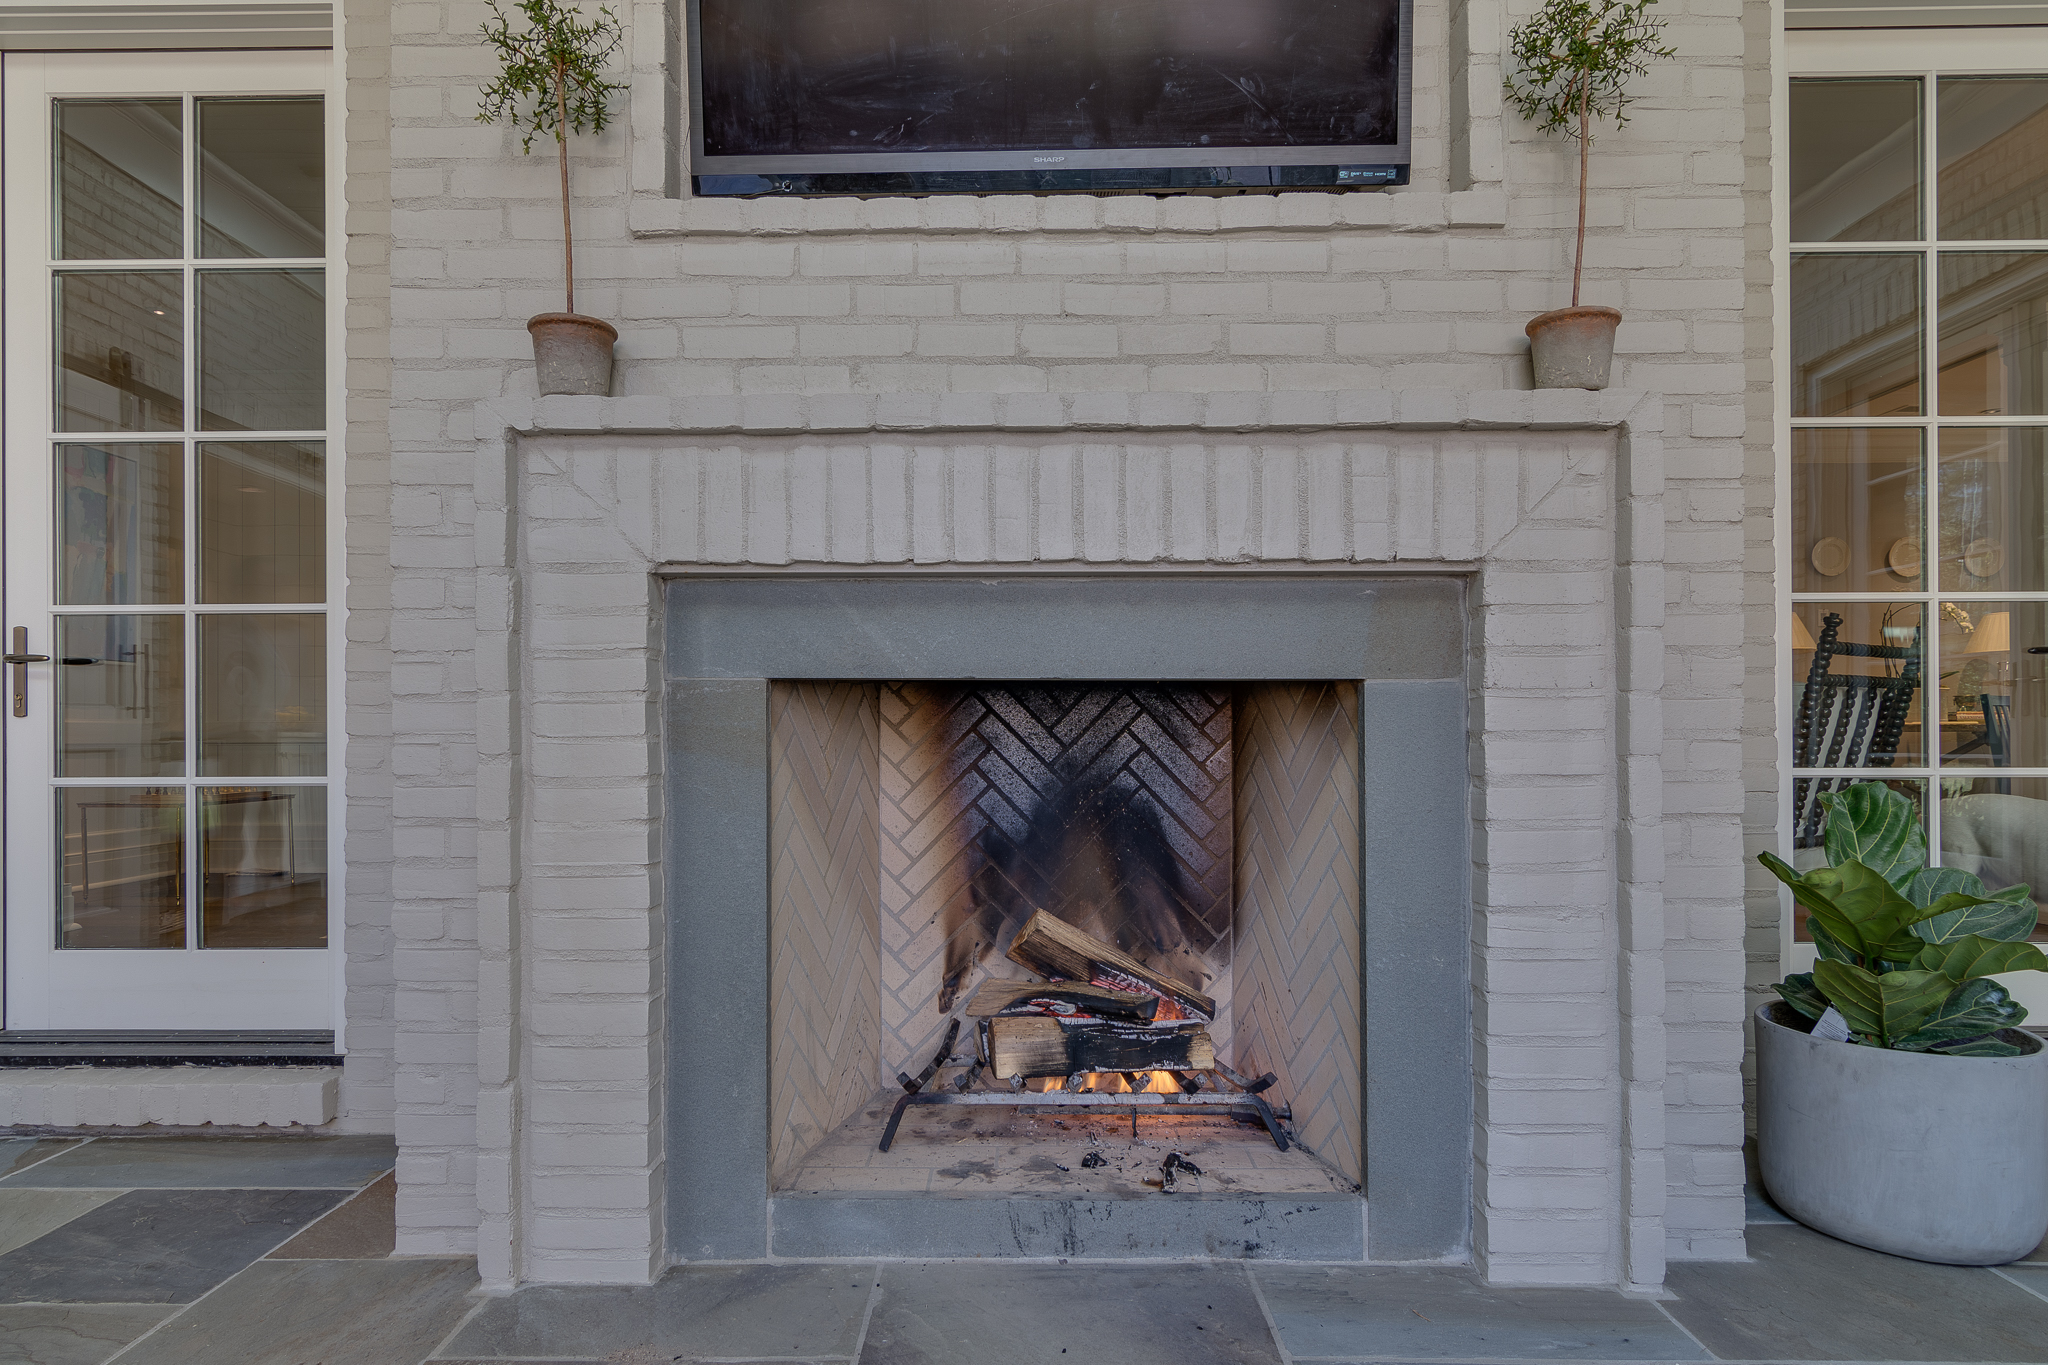 outdoor isokern wood burning fireplace in use in memphis home